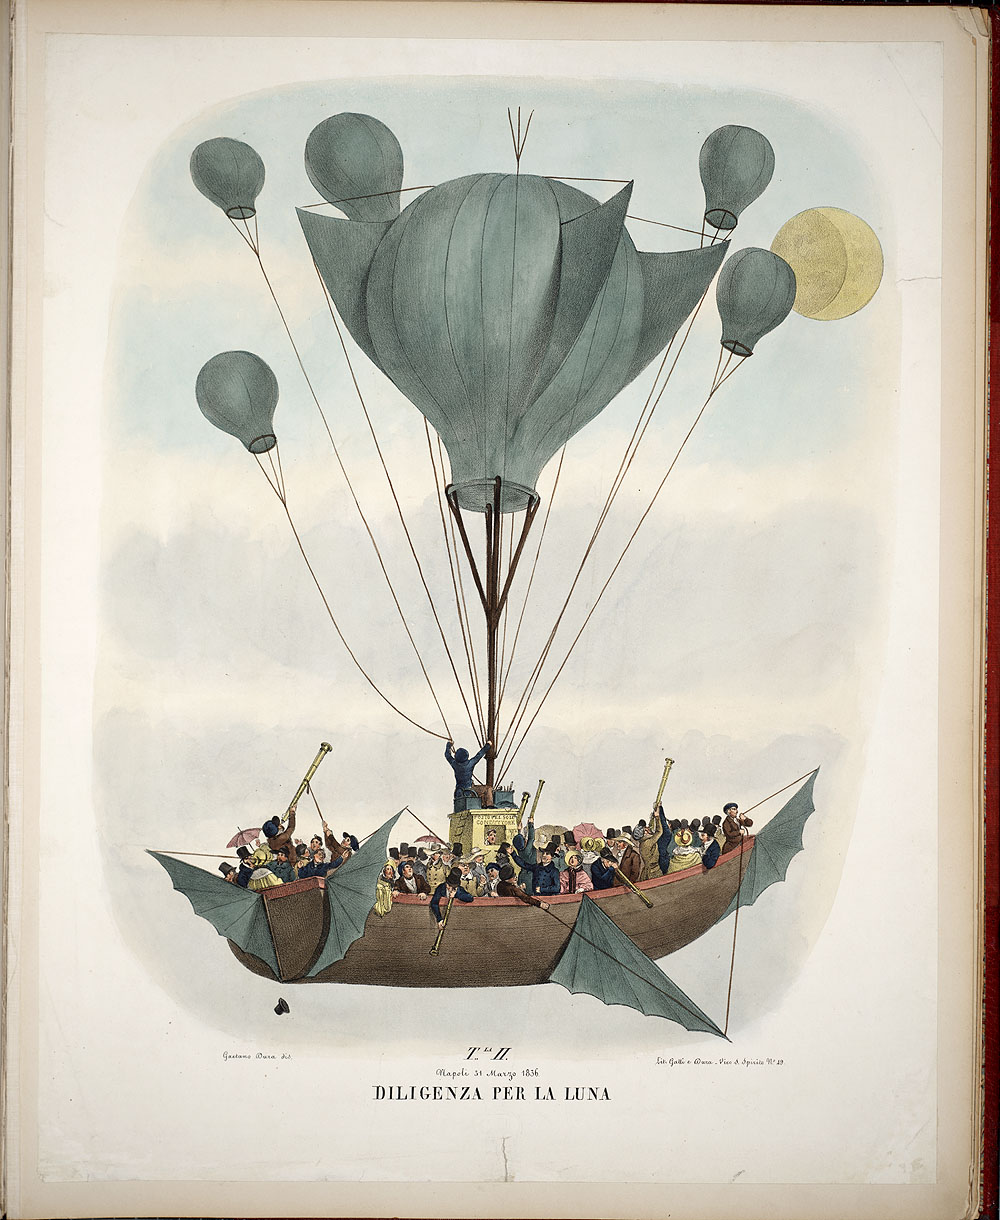 This portfolio of hand-tinted lithographs purports to illustrate the